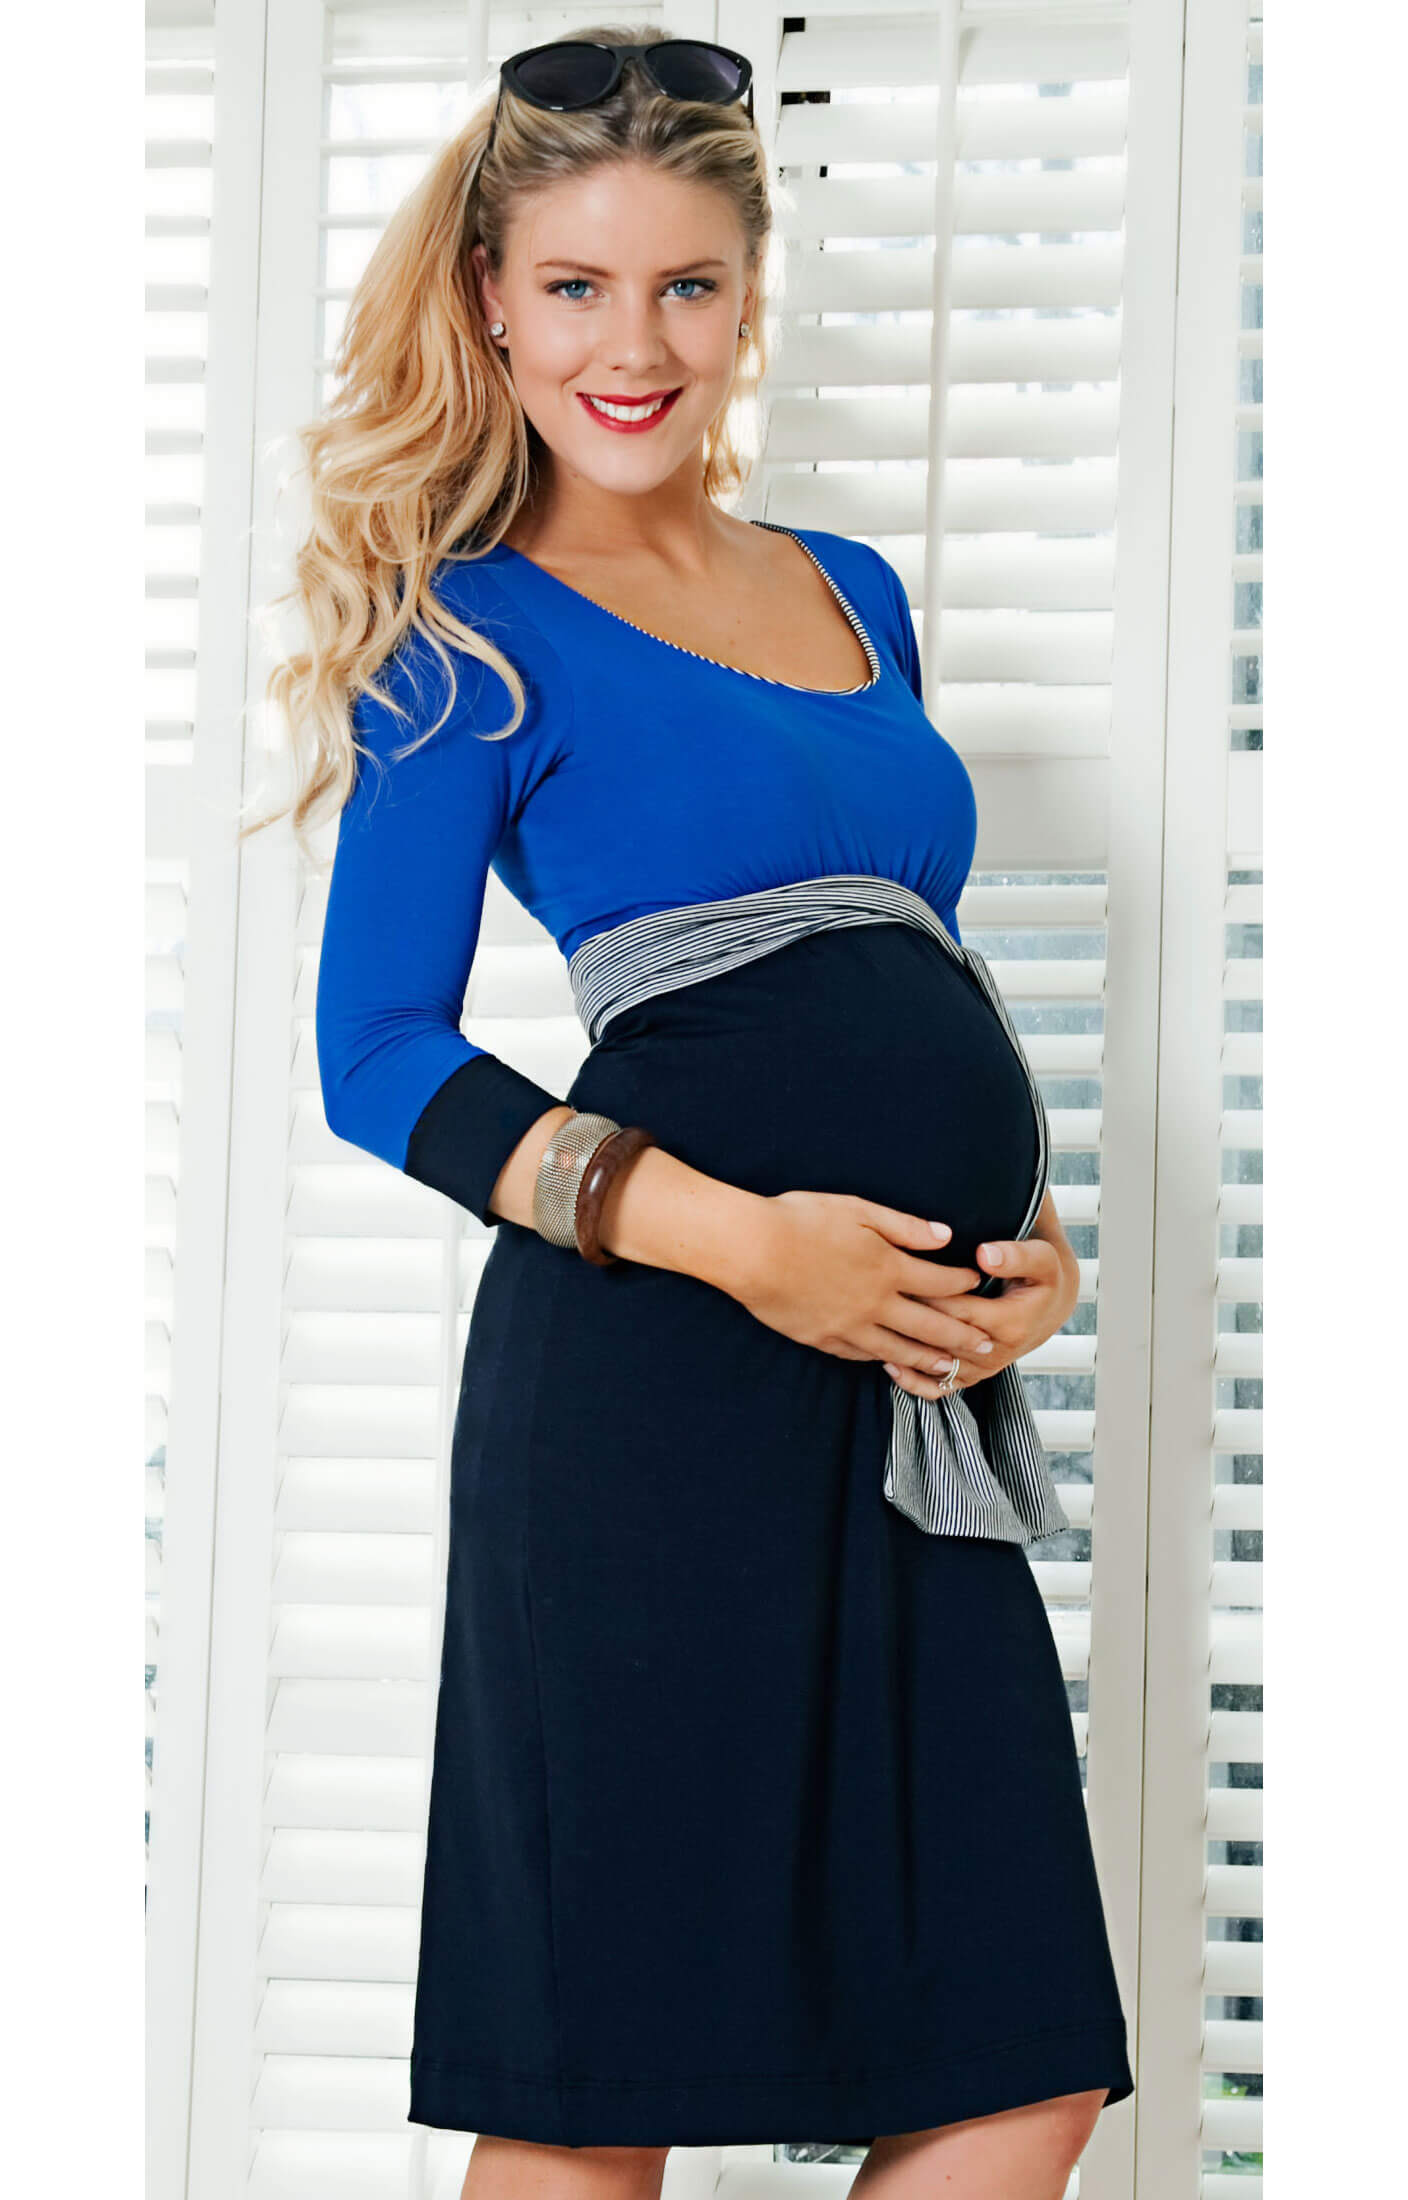 Colour Block Maternity Dress Cruise Maternity Wedding